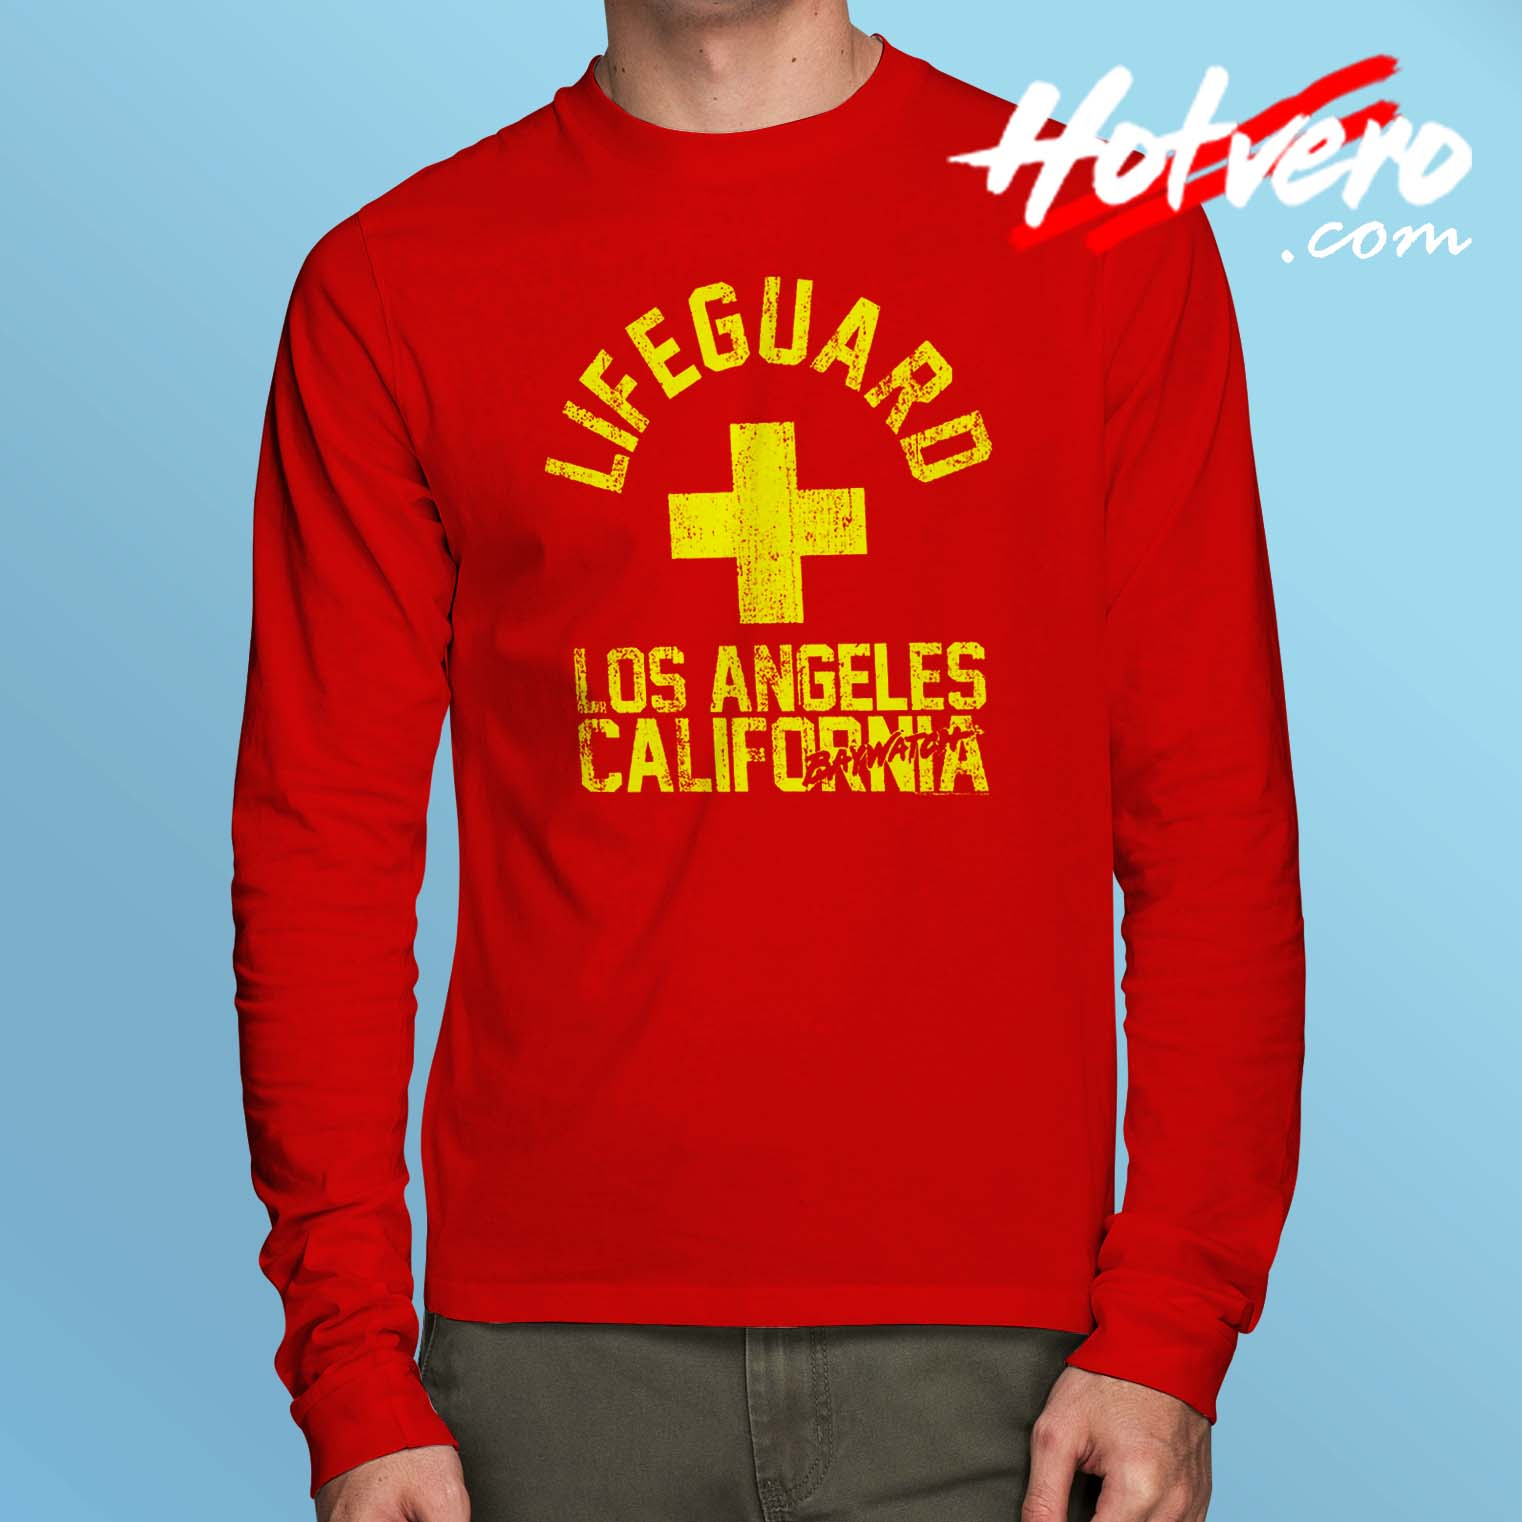 cf14ad5ade6 Baywatch Lifeguard Los Angeles California Long Sleeve T Shirt ...